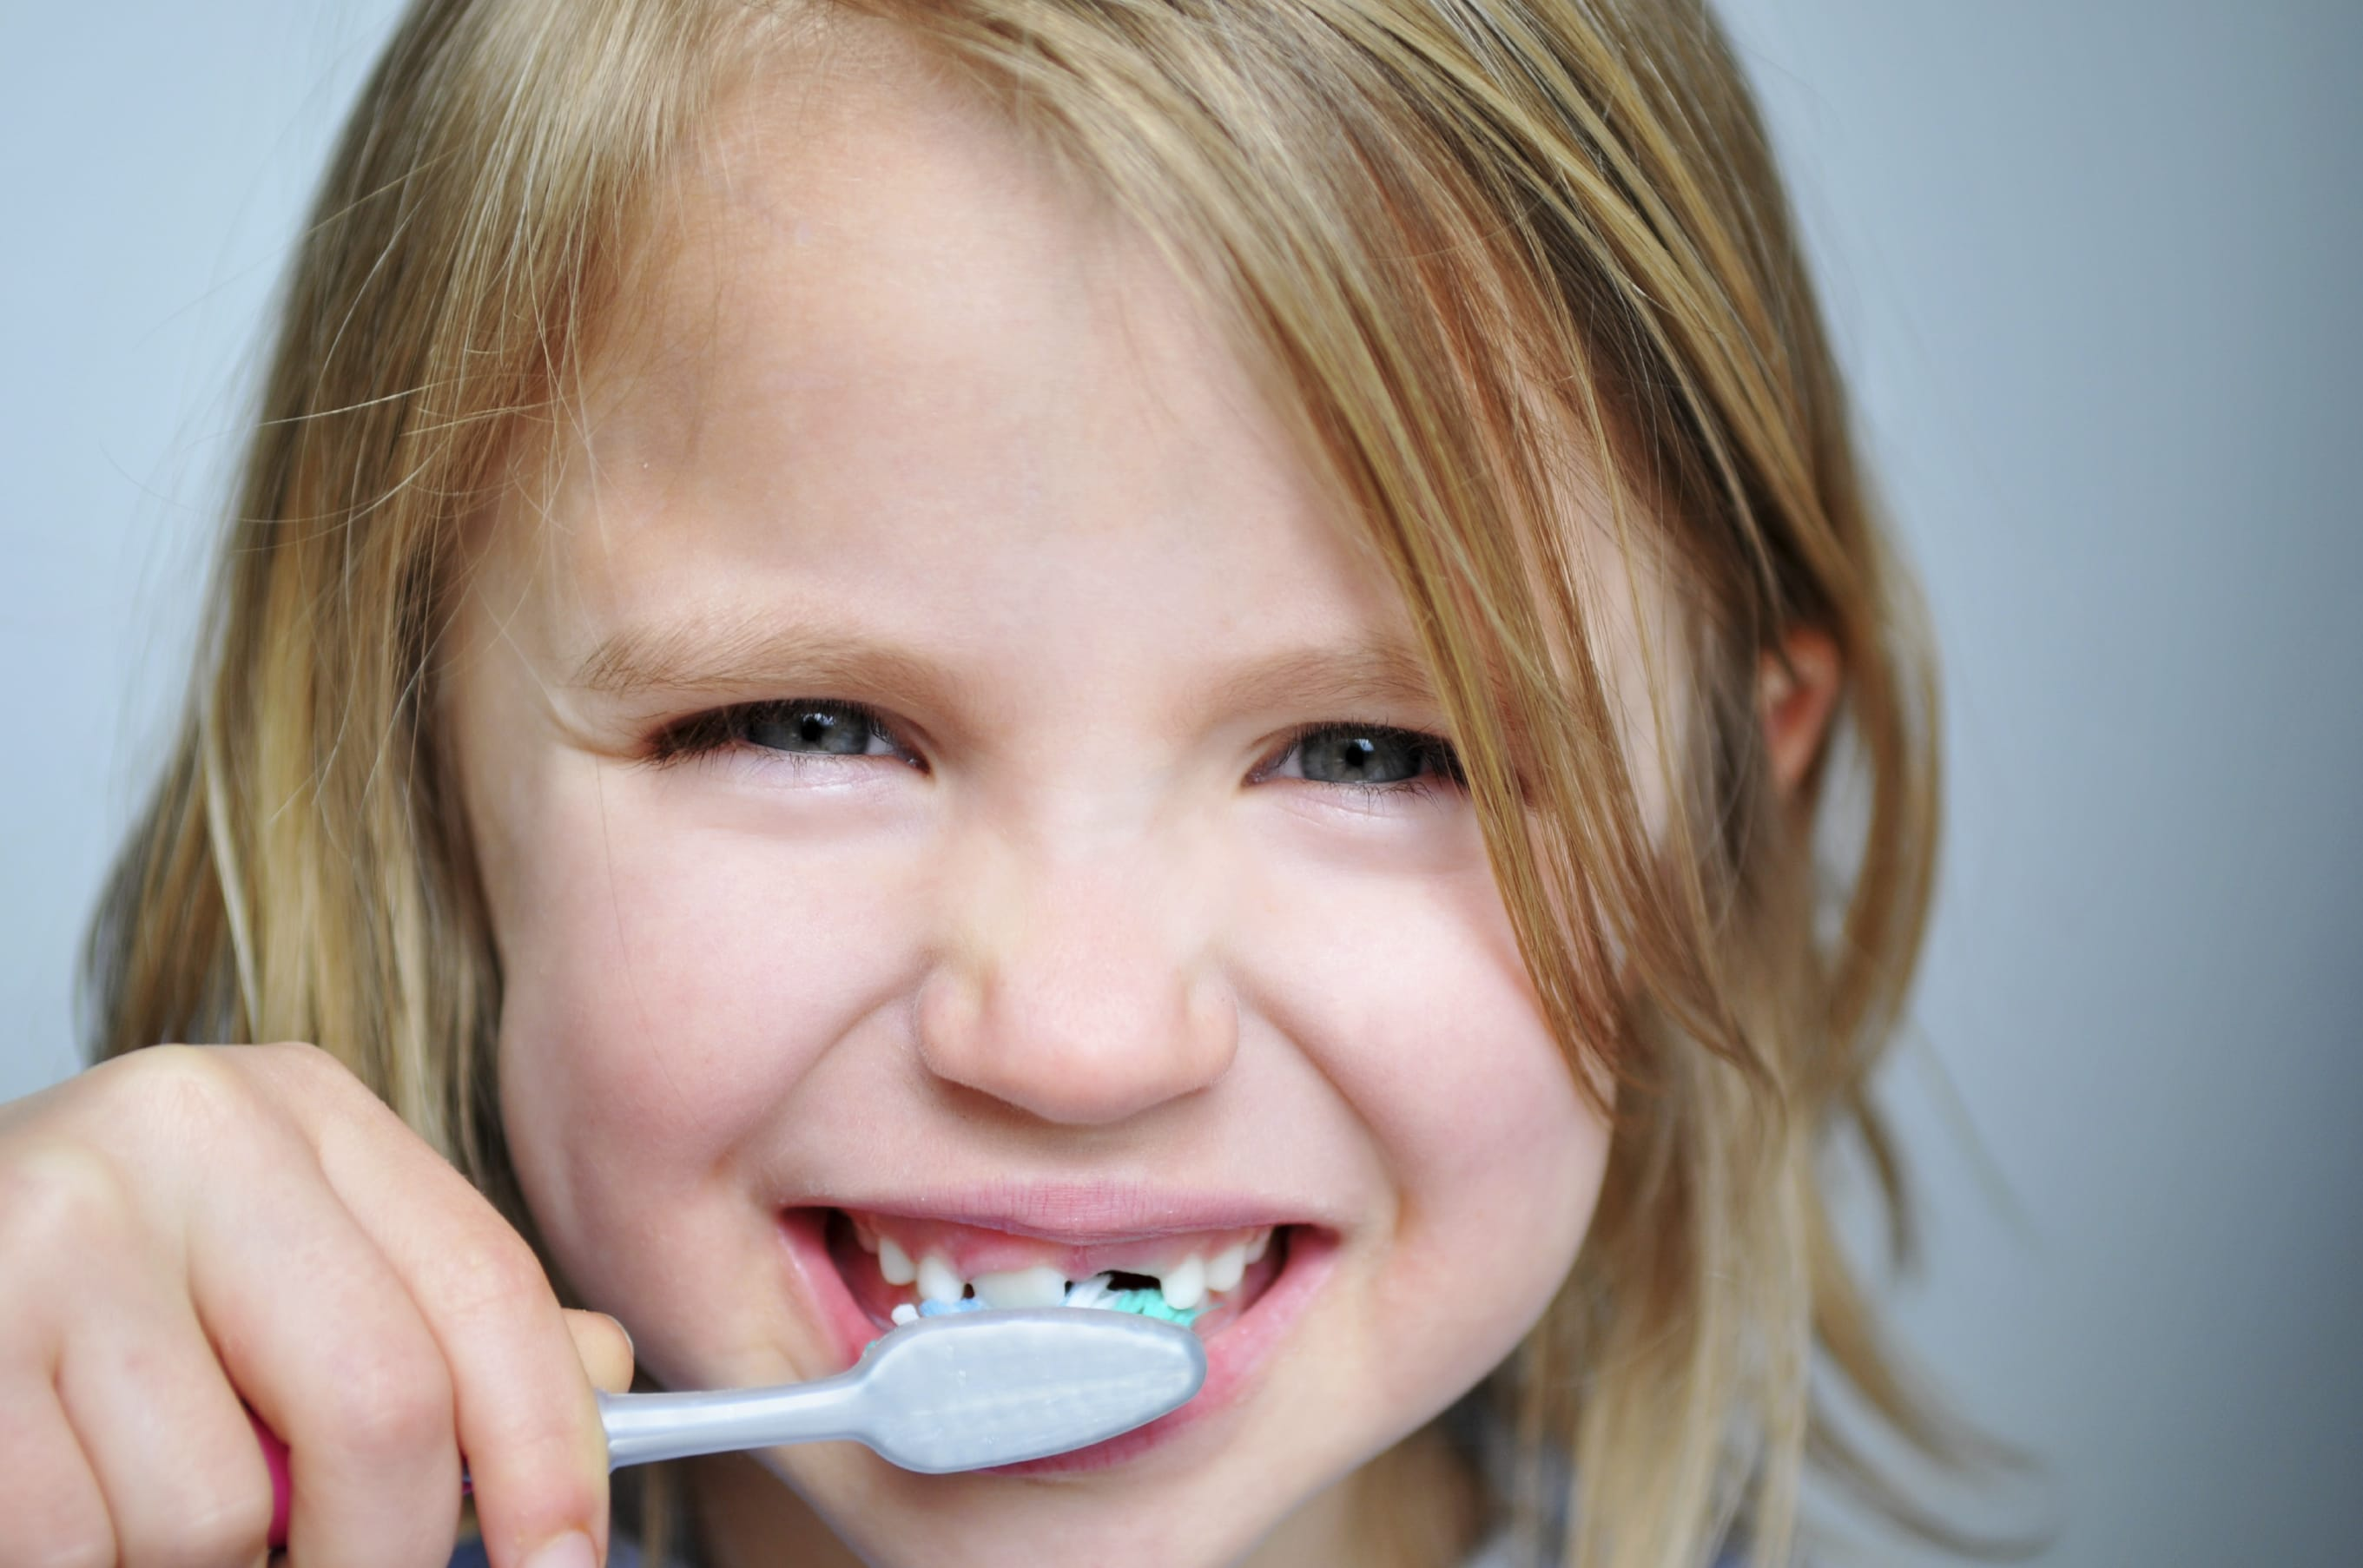 National Children's Dental Health Month: Good Oral Habits Start Young